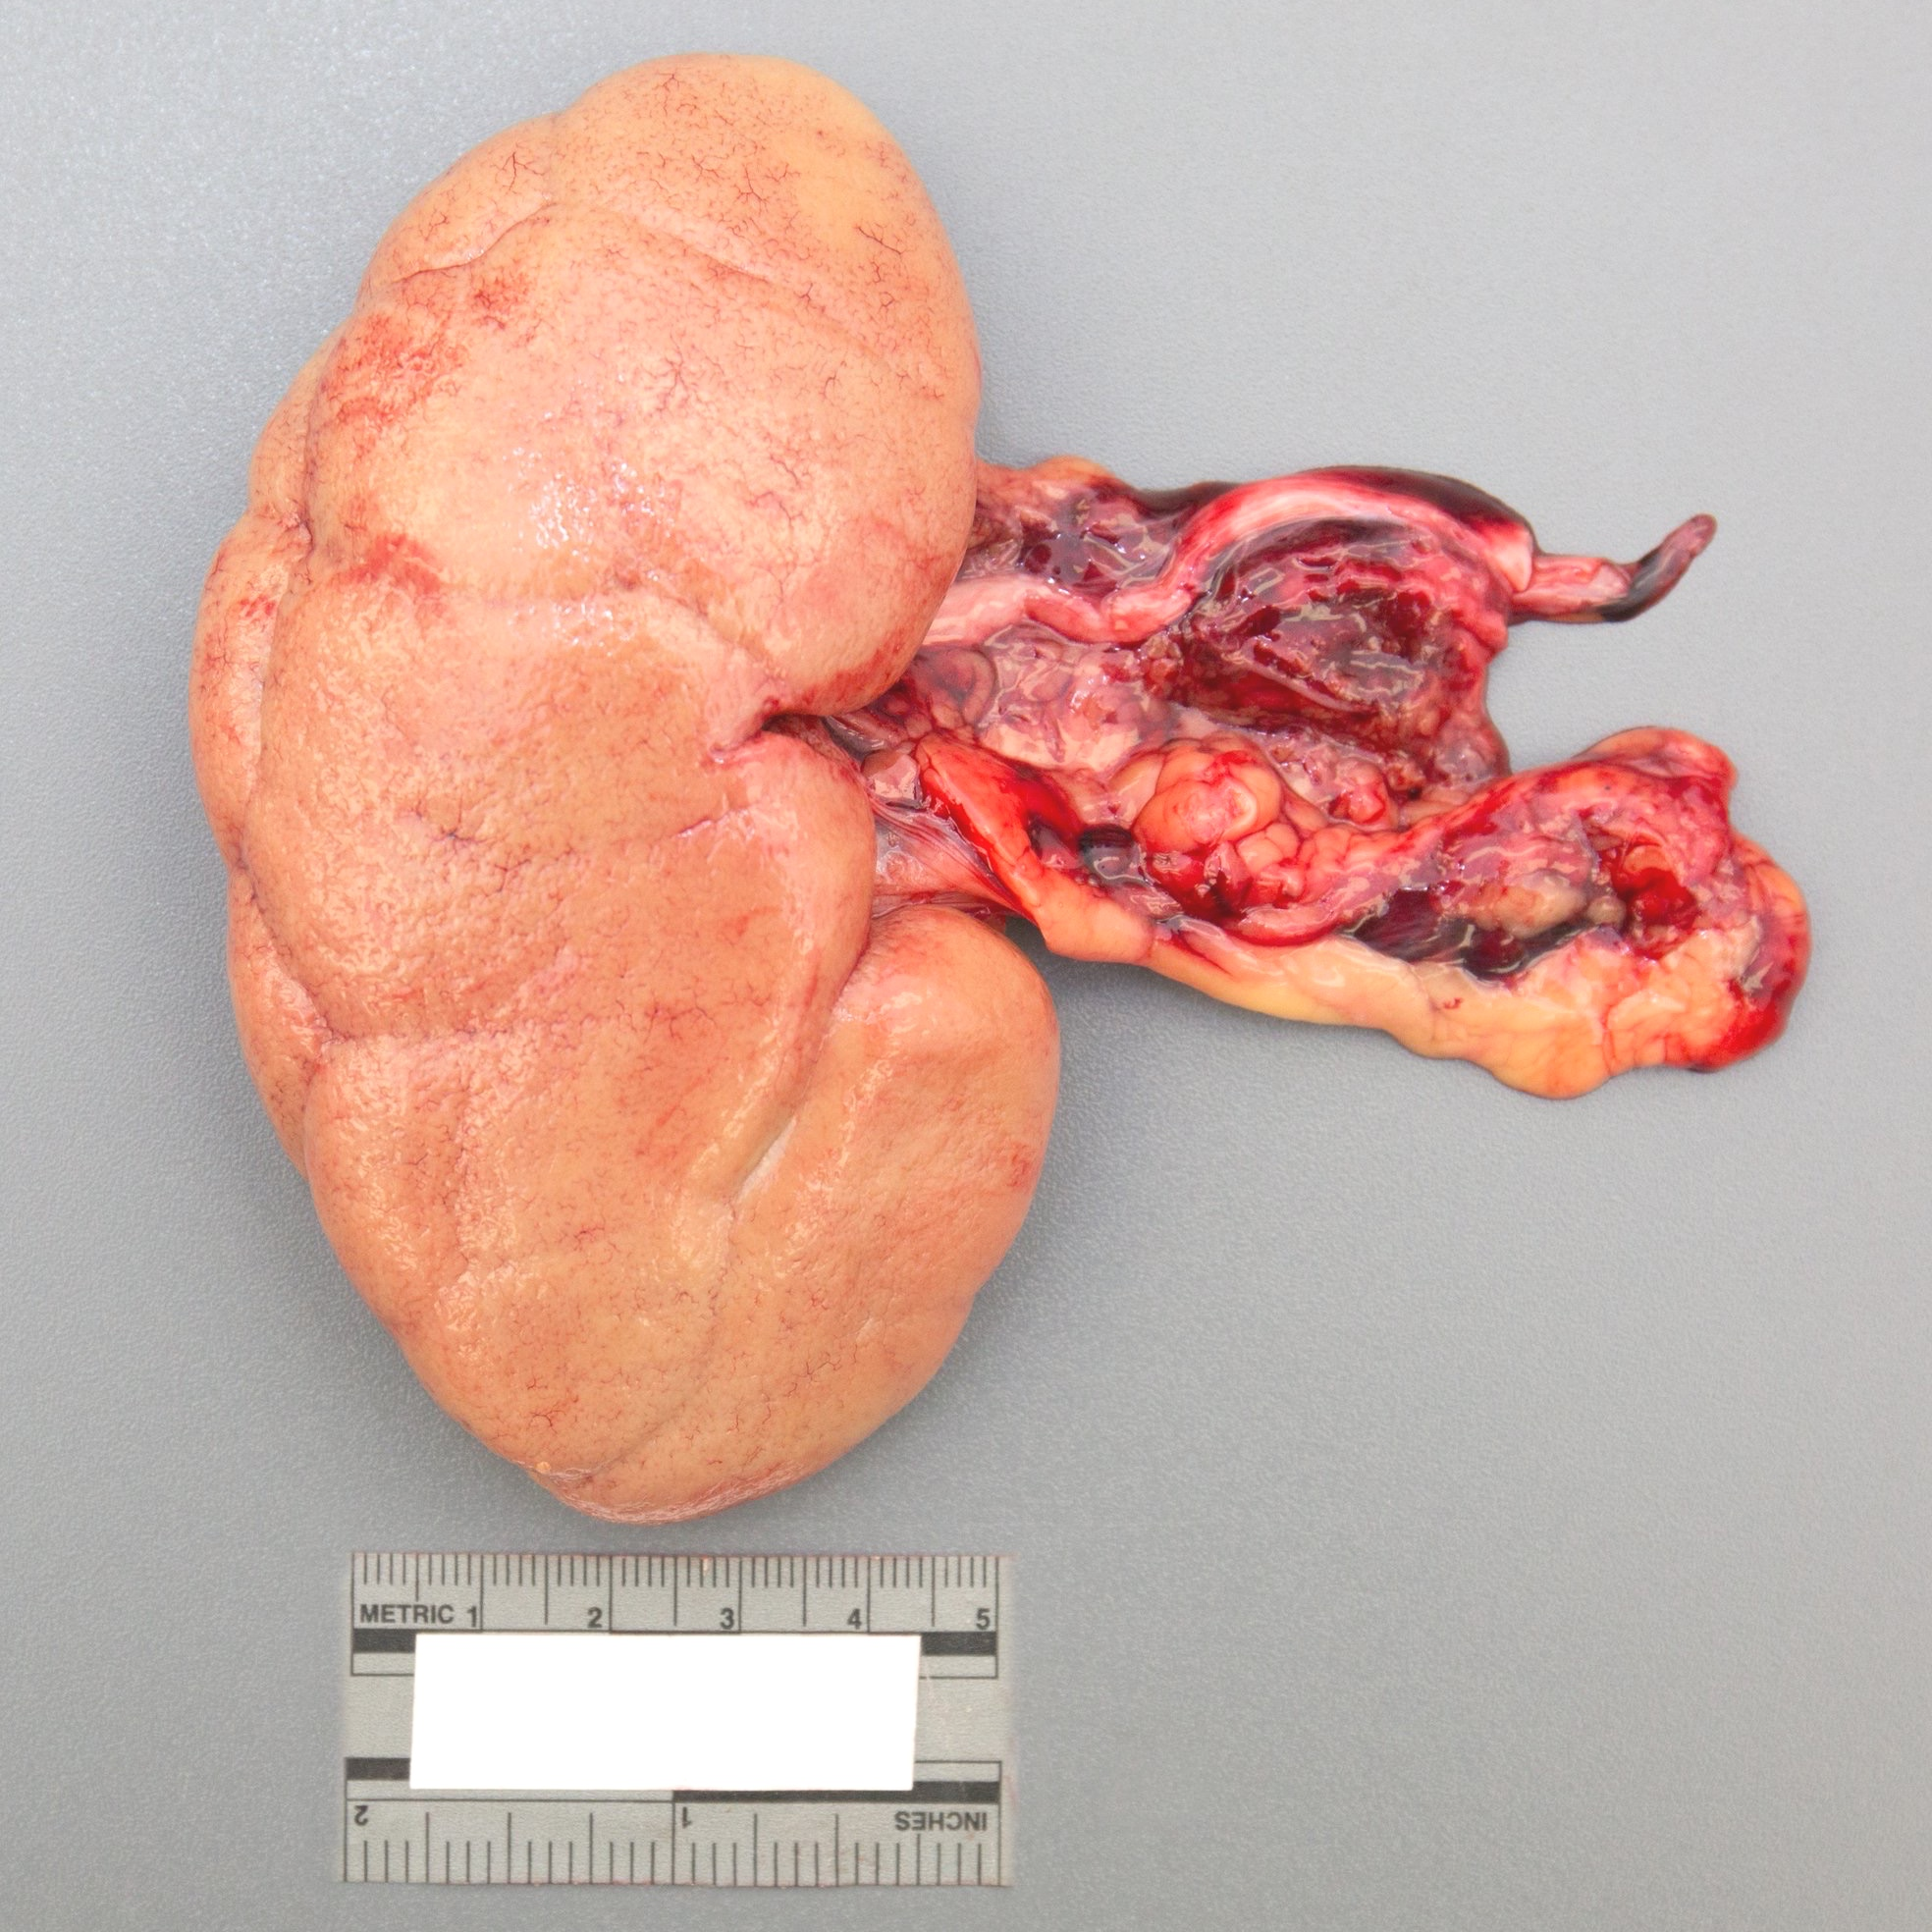 Kidney: Pale, diffuse exsanguination